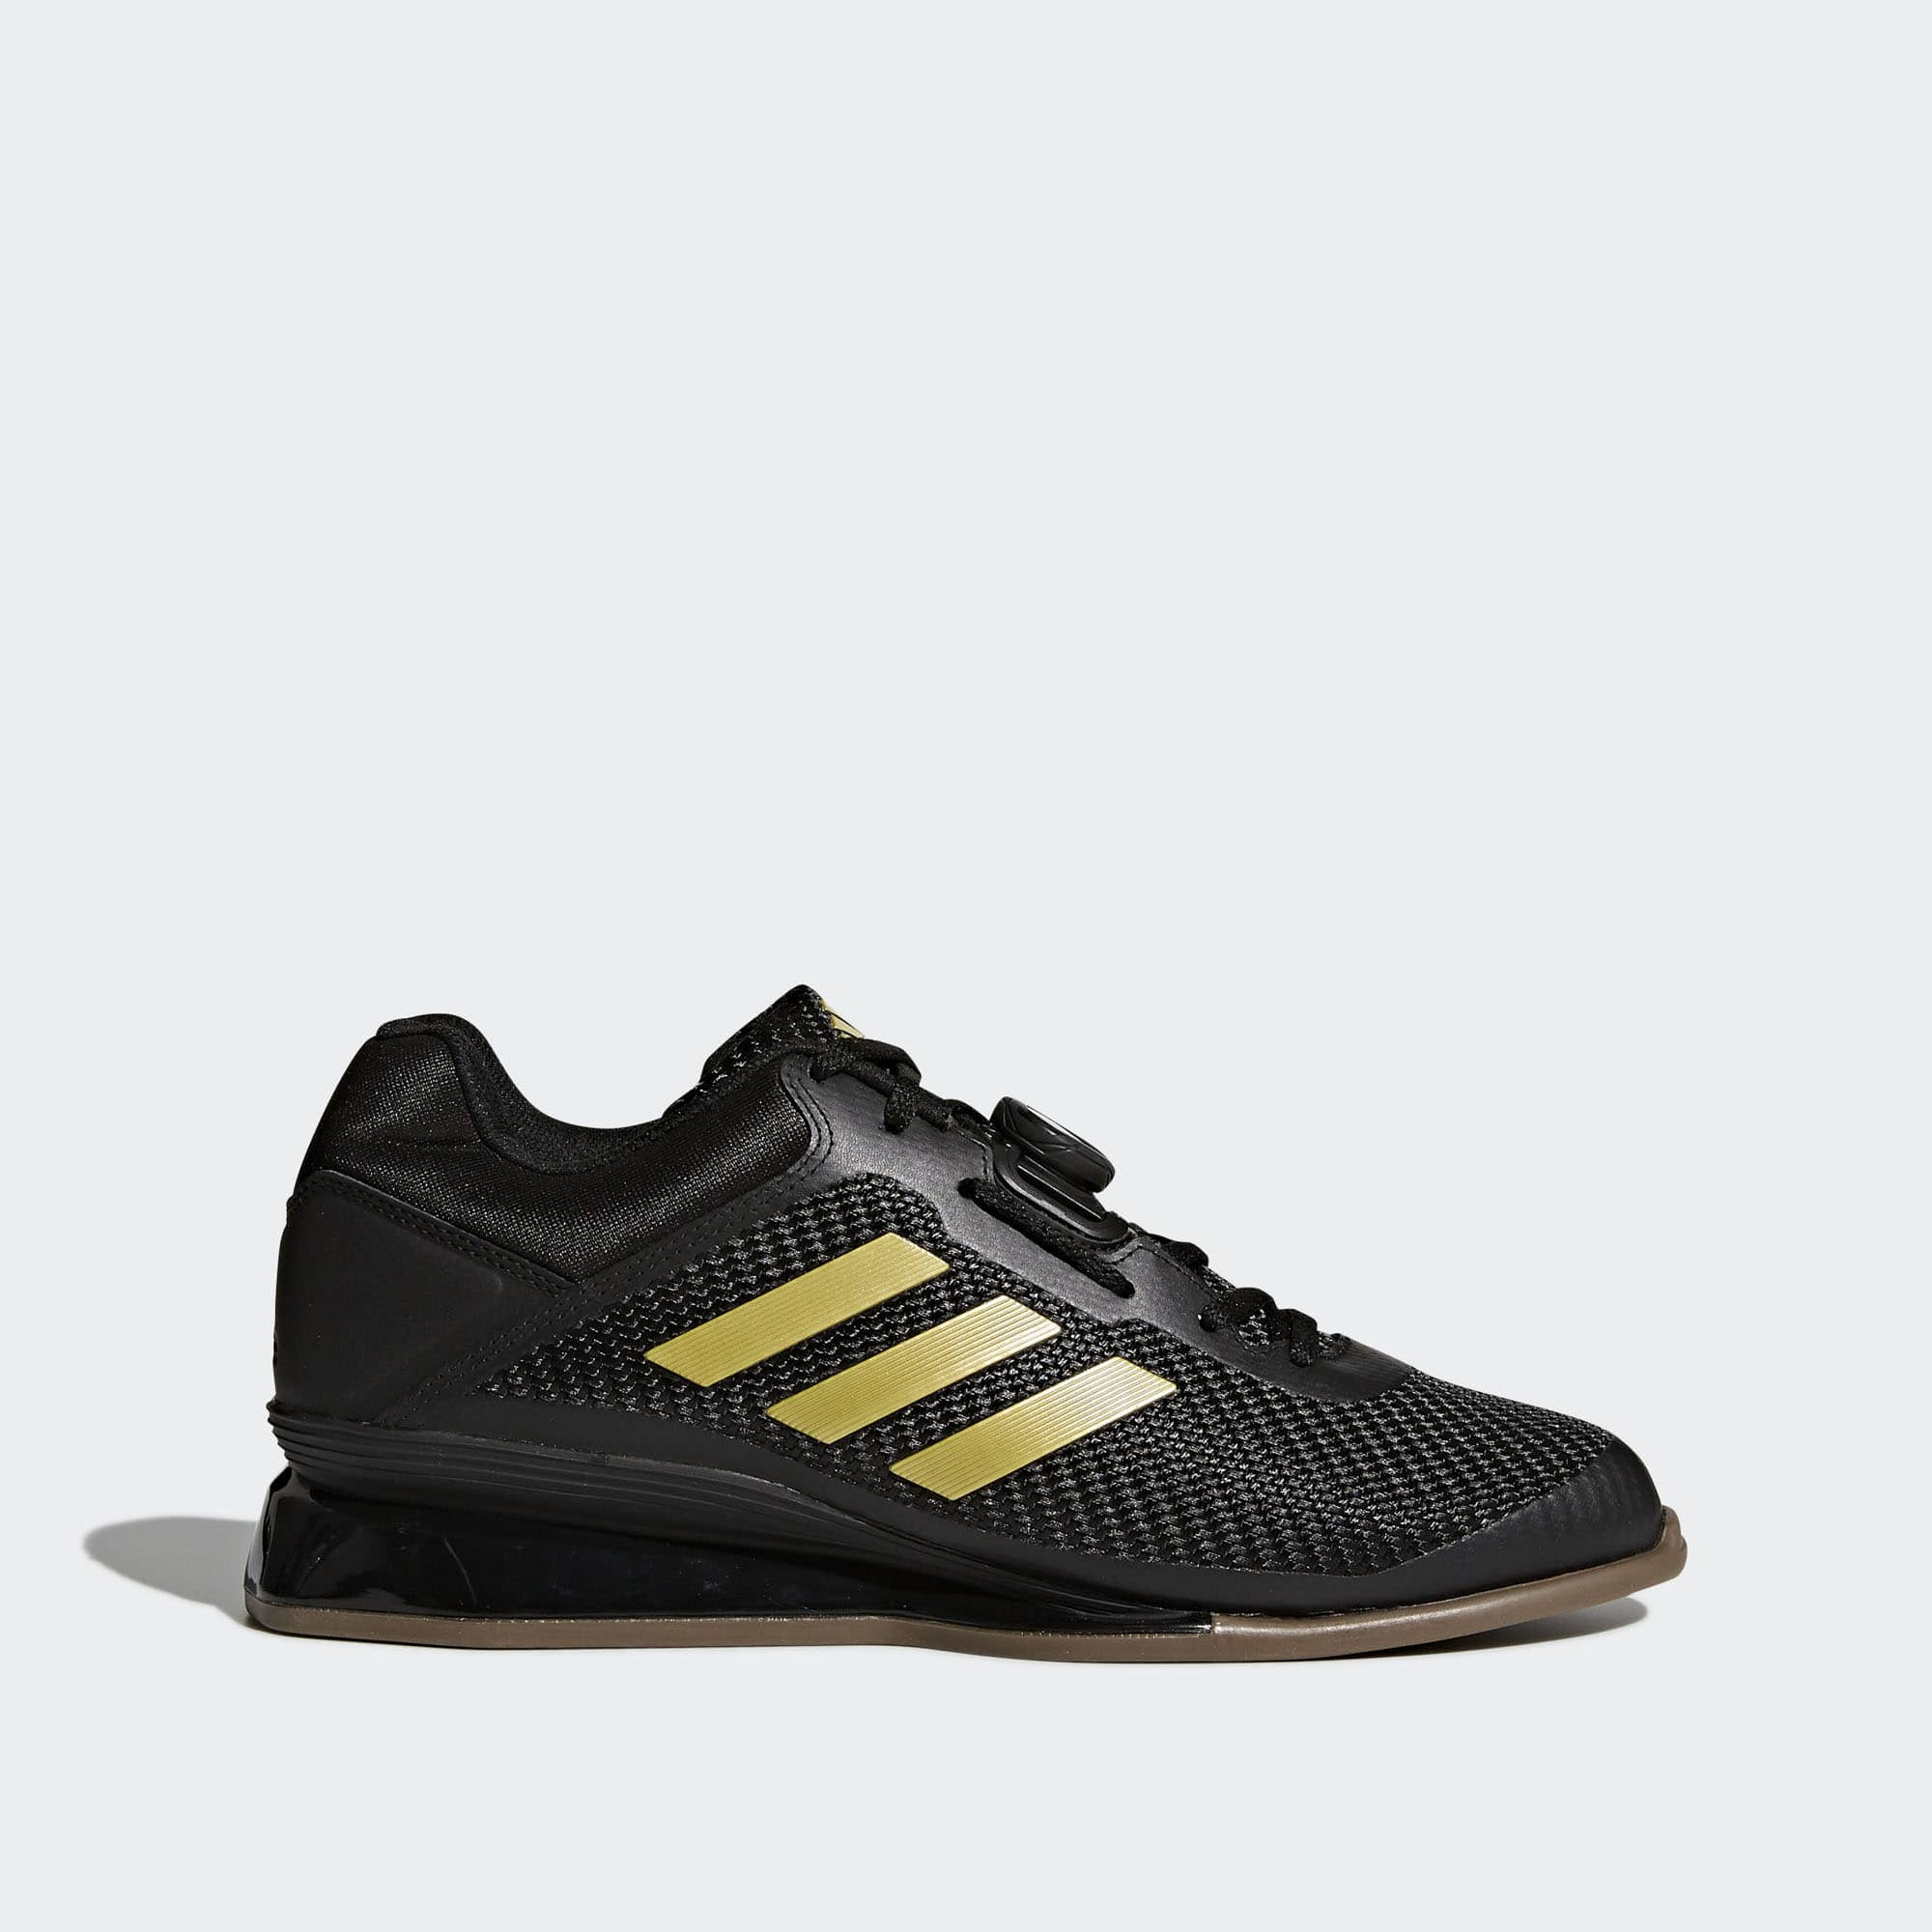 best website 31bf8 ec12e Adidas Mens Leistung 16 2.0 Weightlifting Shoes (Various Colors) EXPIRED